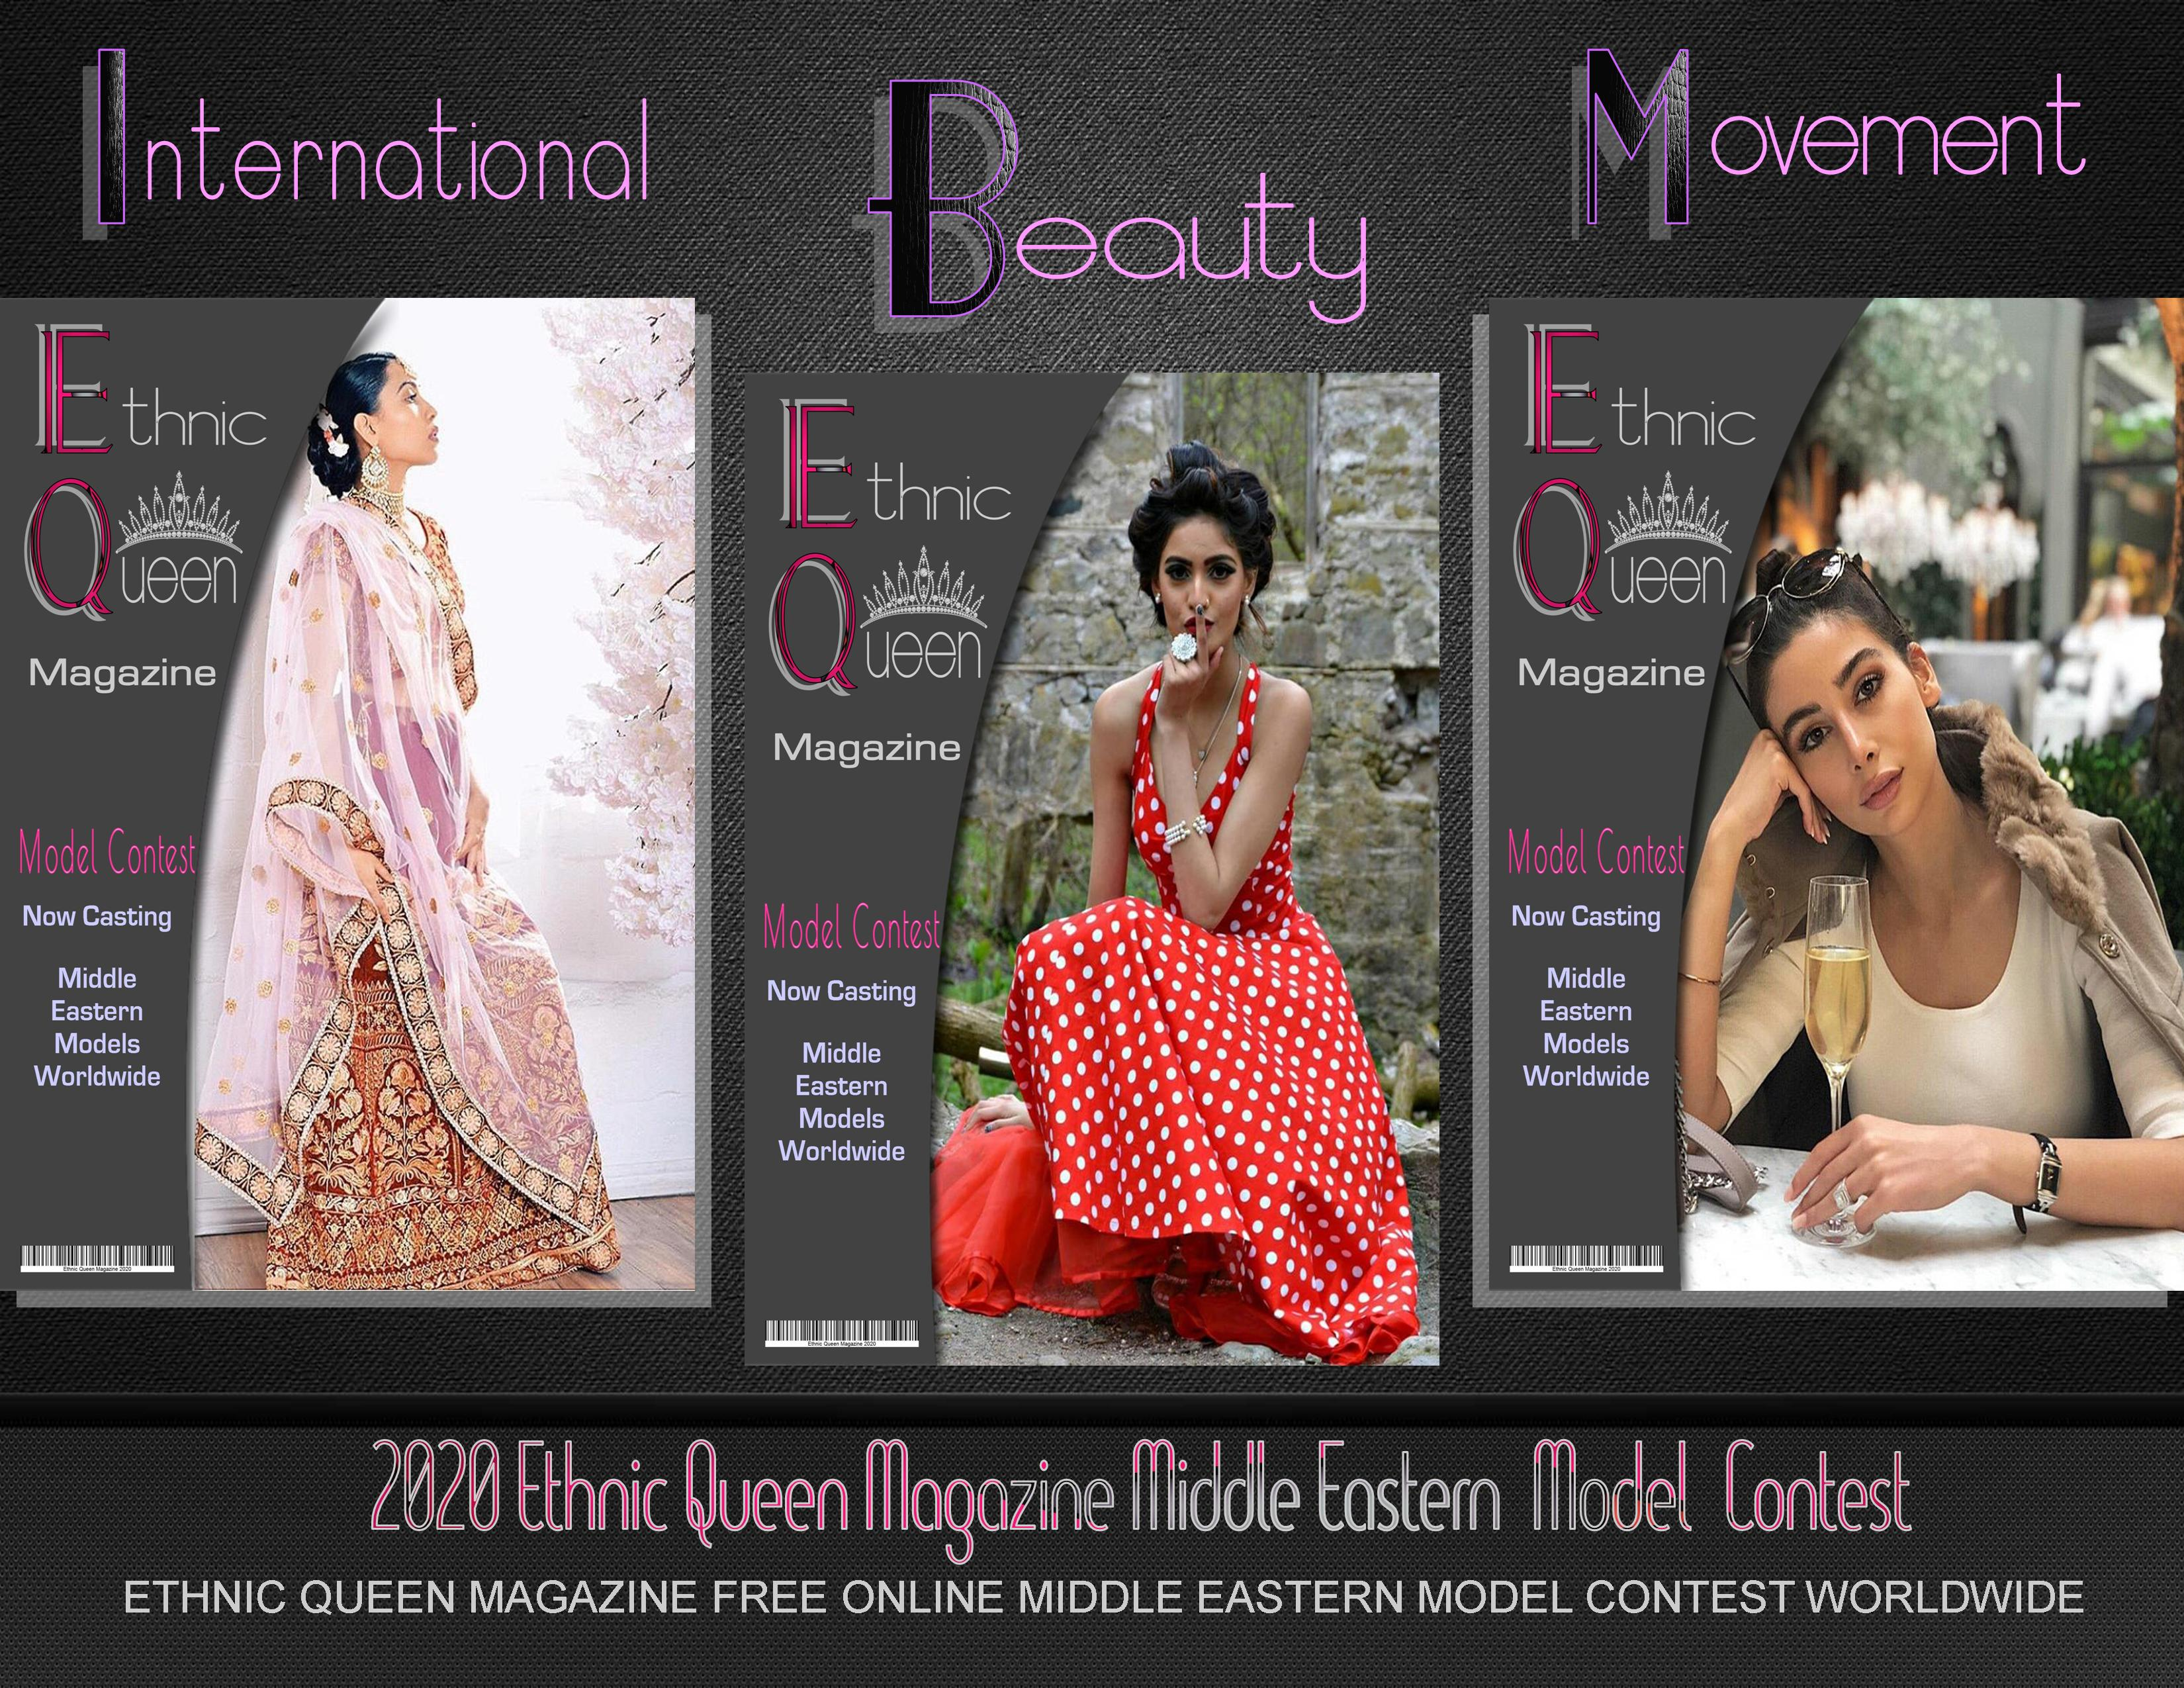 2020 Ethnic Queen Magazine Modeling Competition Online Competitions